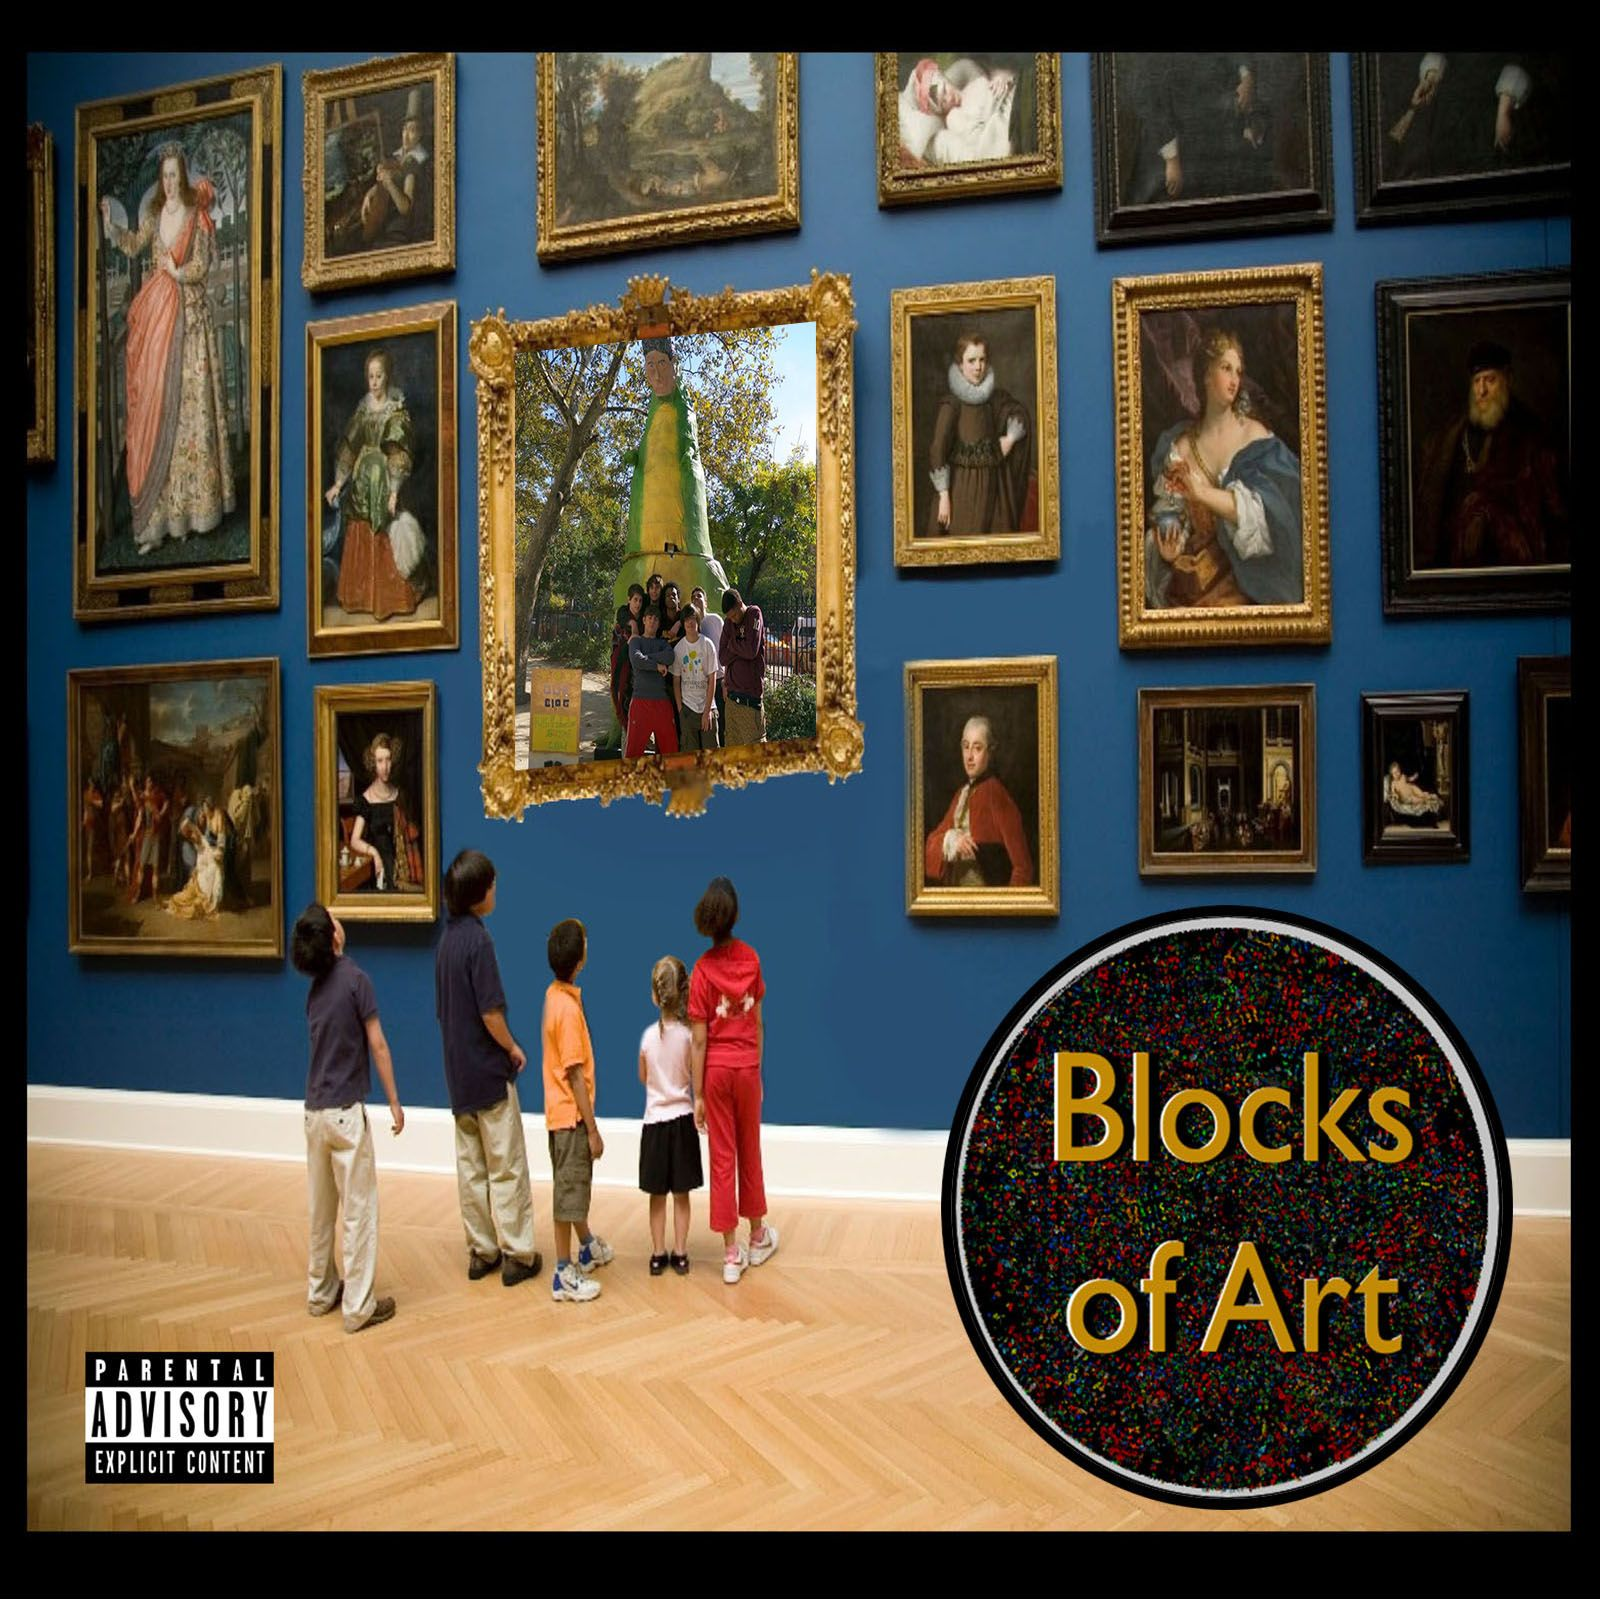 Blocks of Art